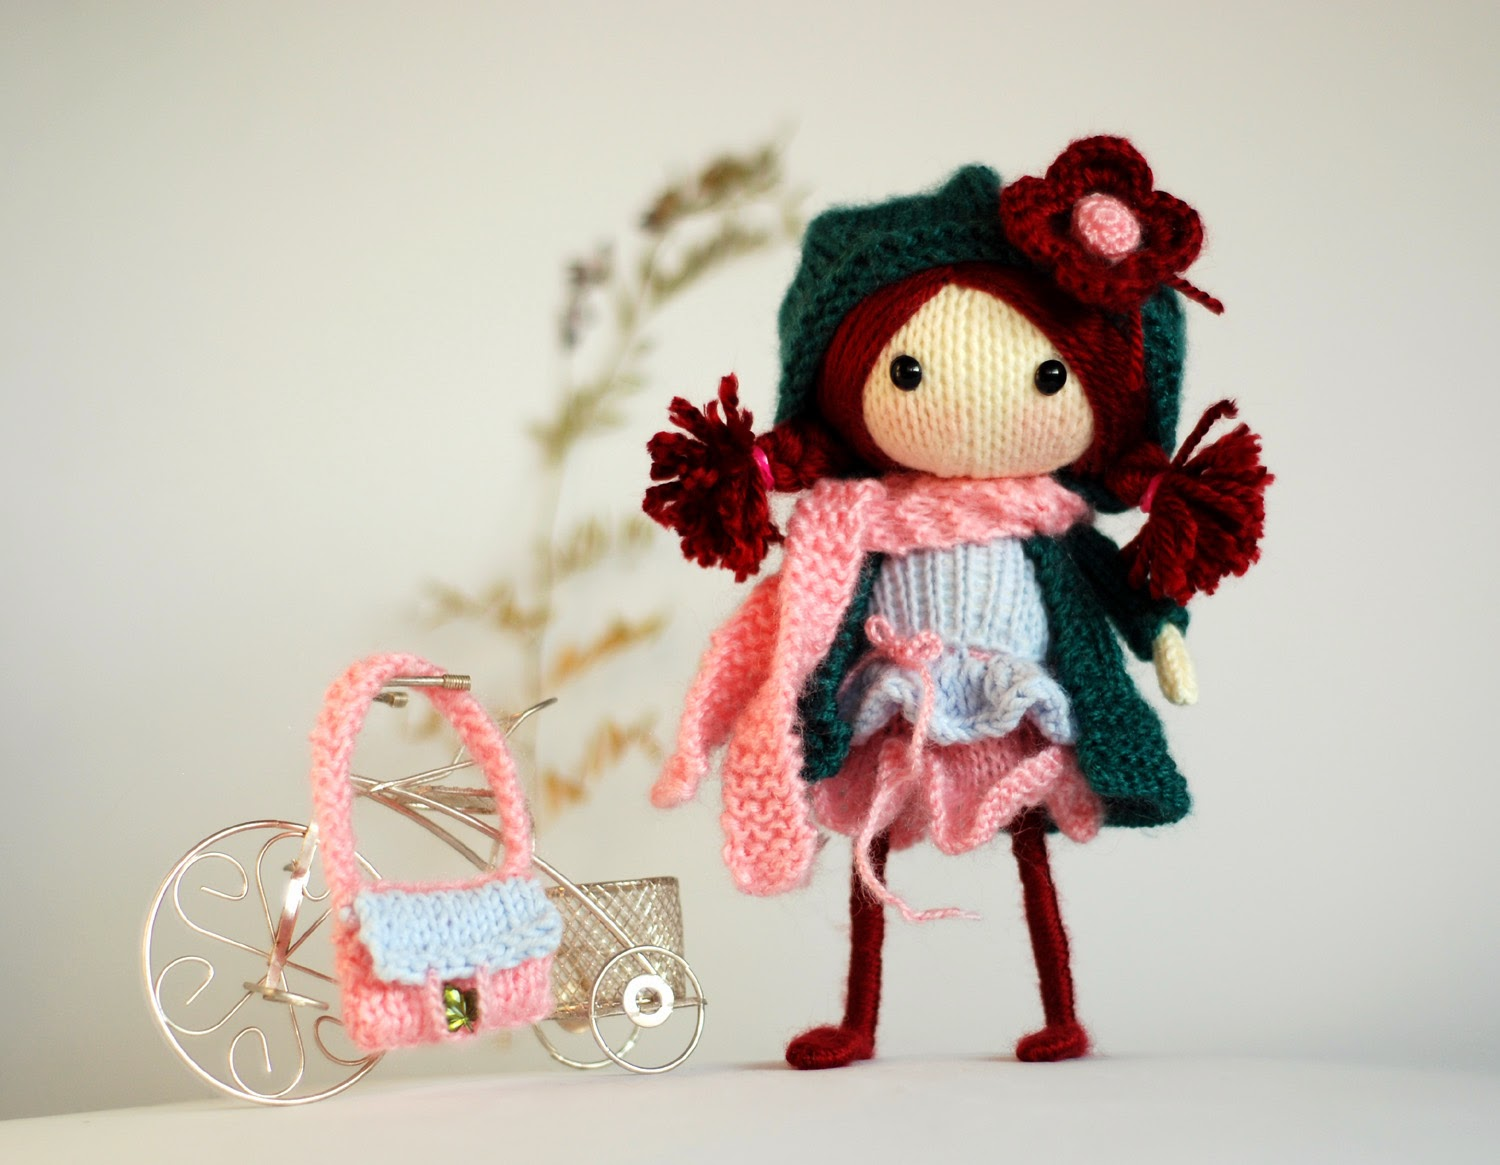 12 Knitted Doll Patterns - The Funky Stitch